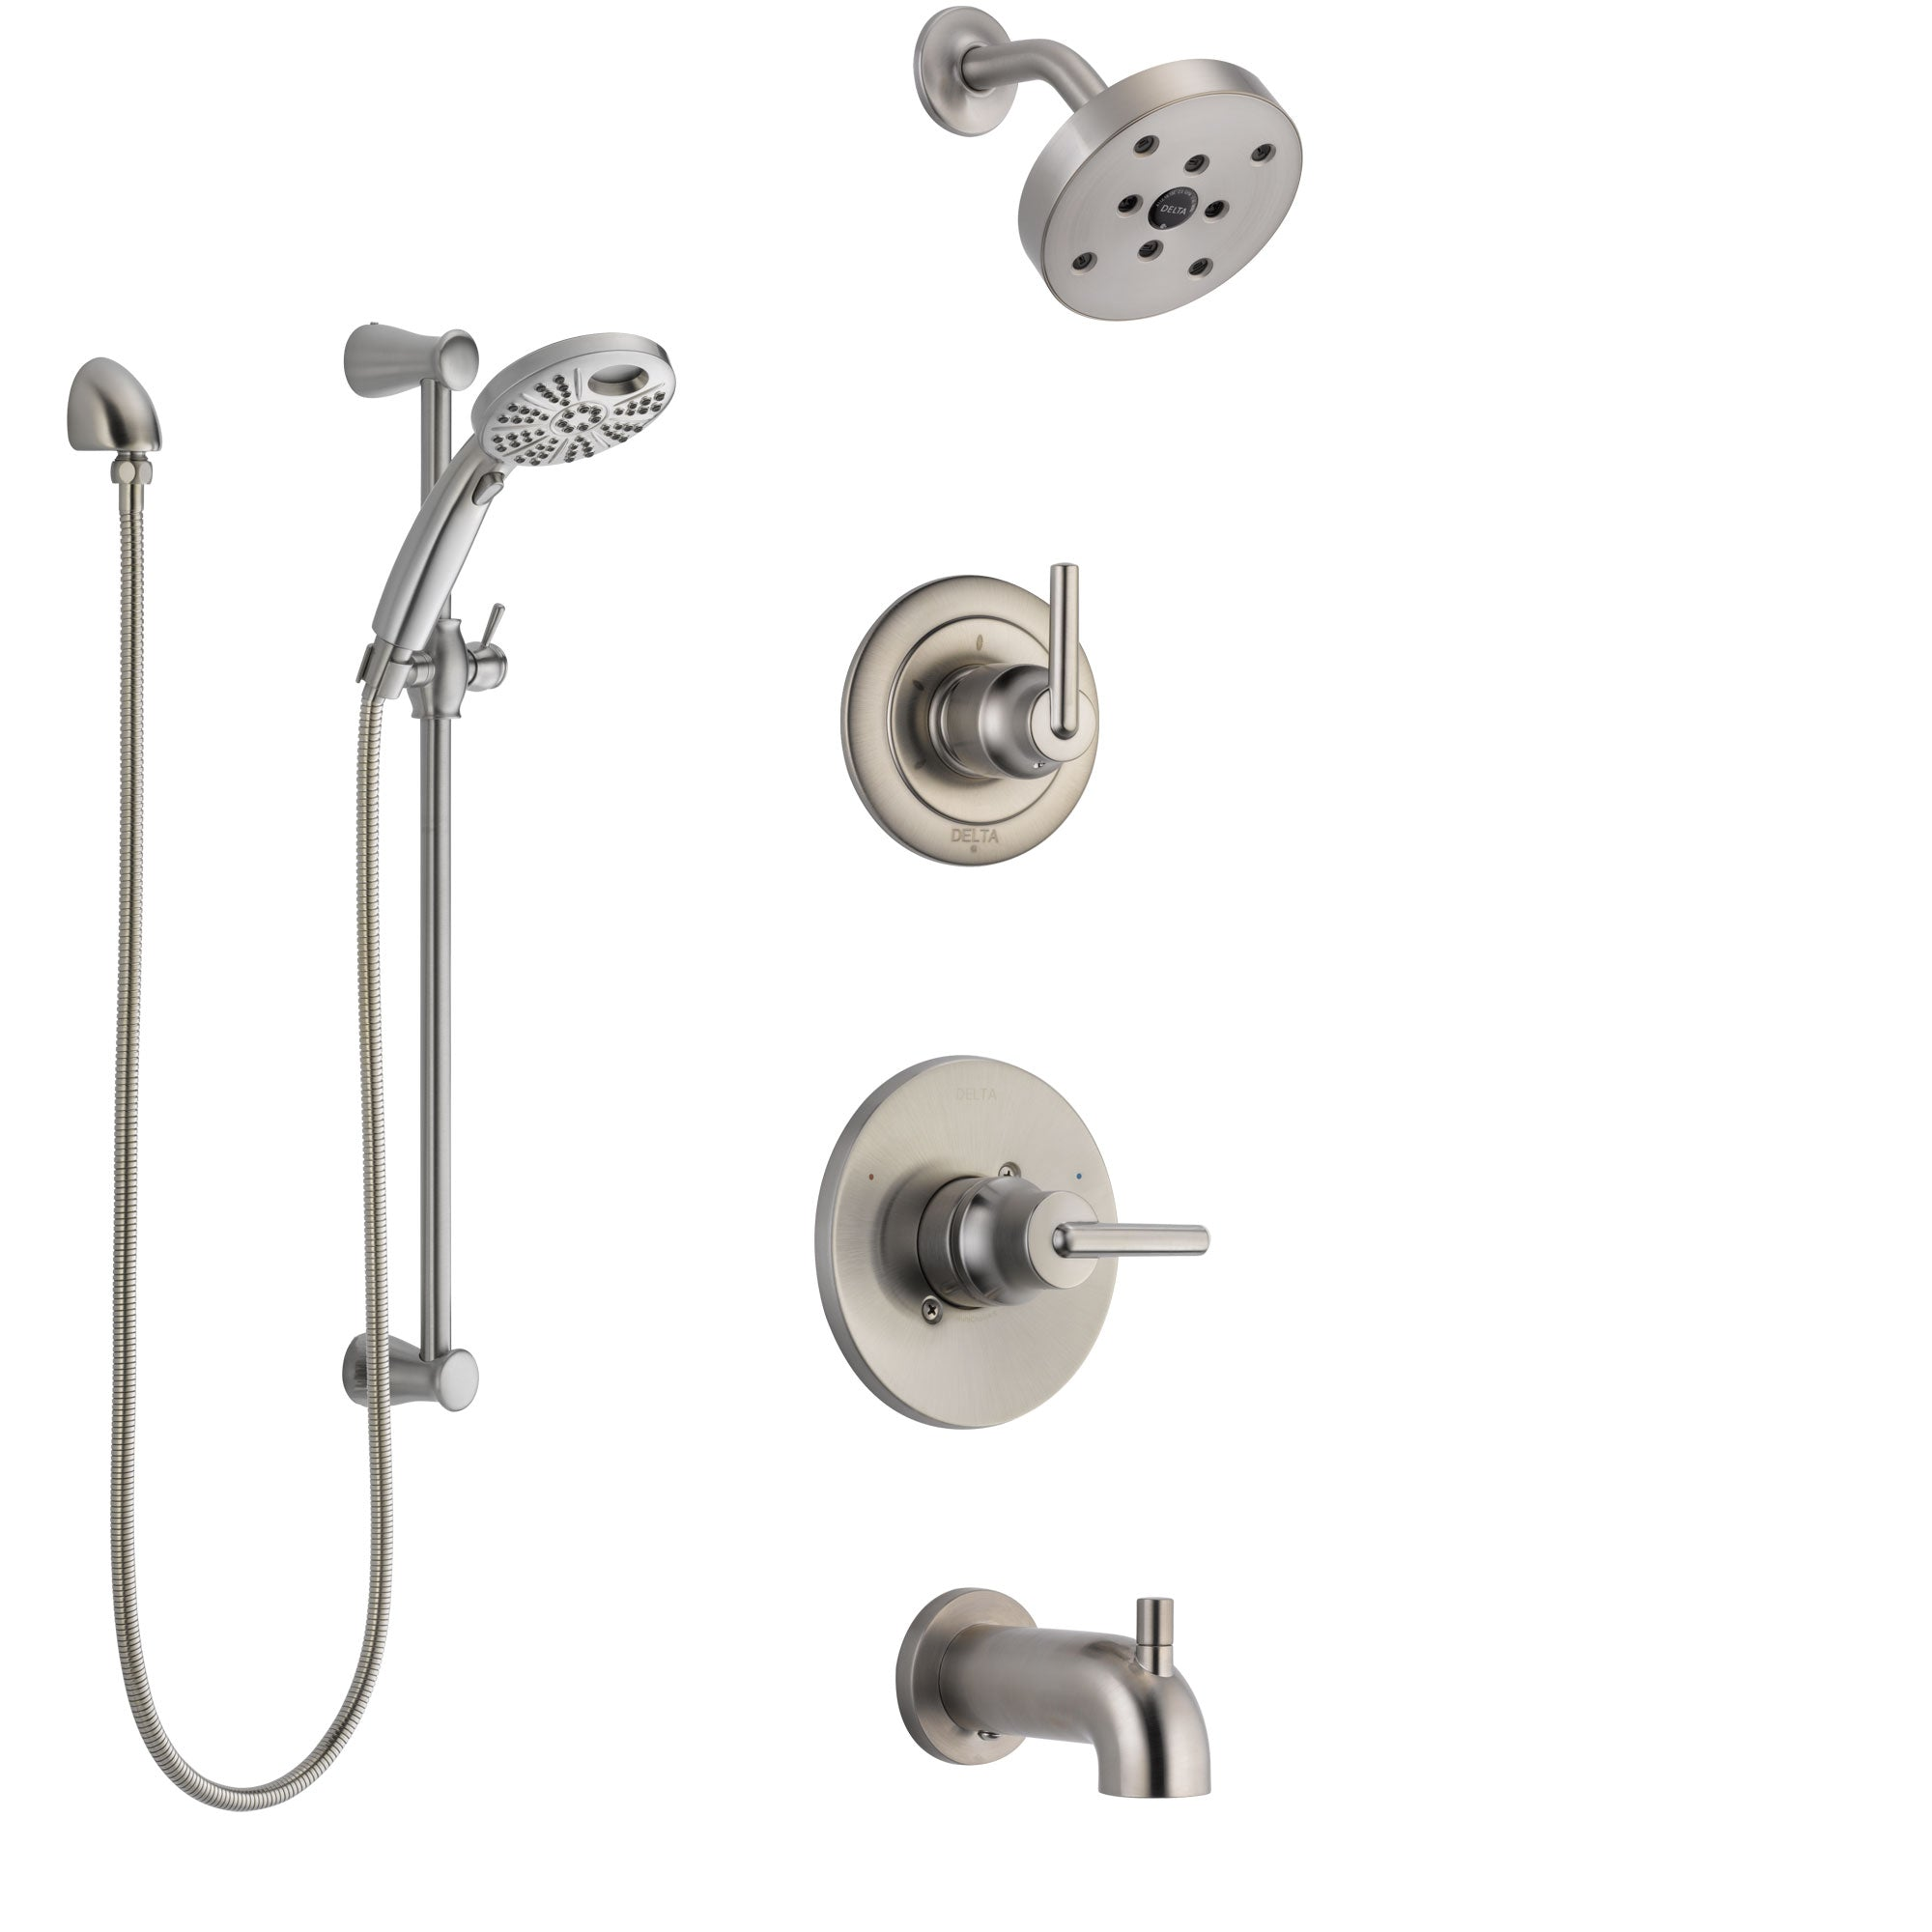 Delta Trinsic Stainless Steel Finish Tub and Shower System with Control Handle, Diverter, Showerhead, and Temp2O Hand Shower with Slidebar SS14459SS4